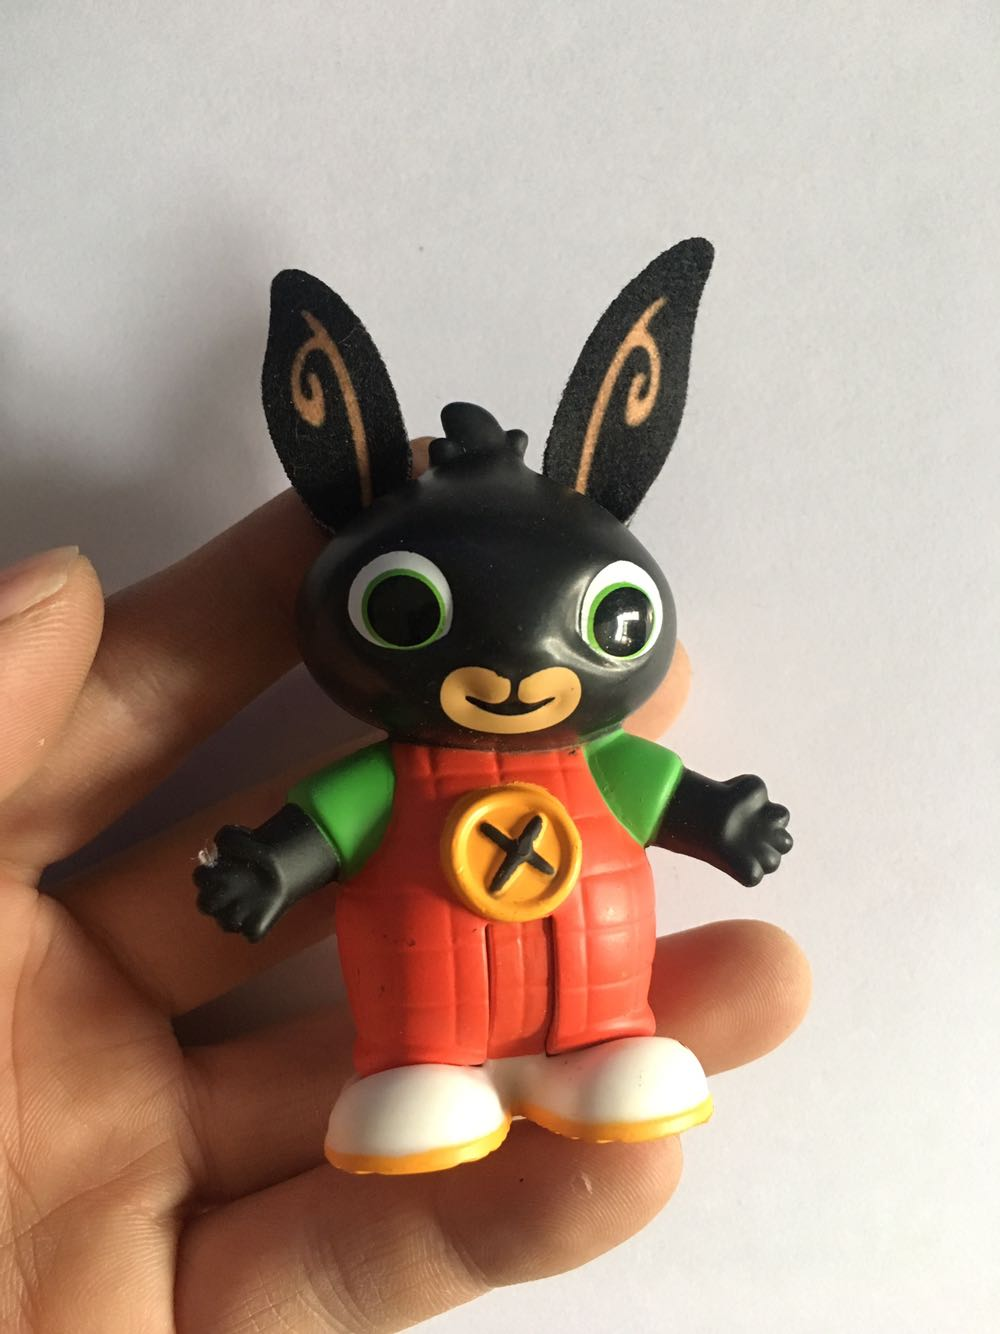 New Bing Bunny Action Figures Children's Gifts